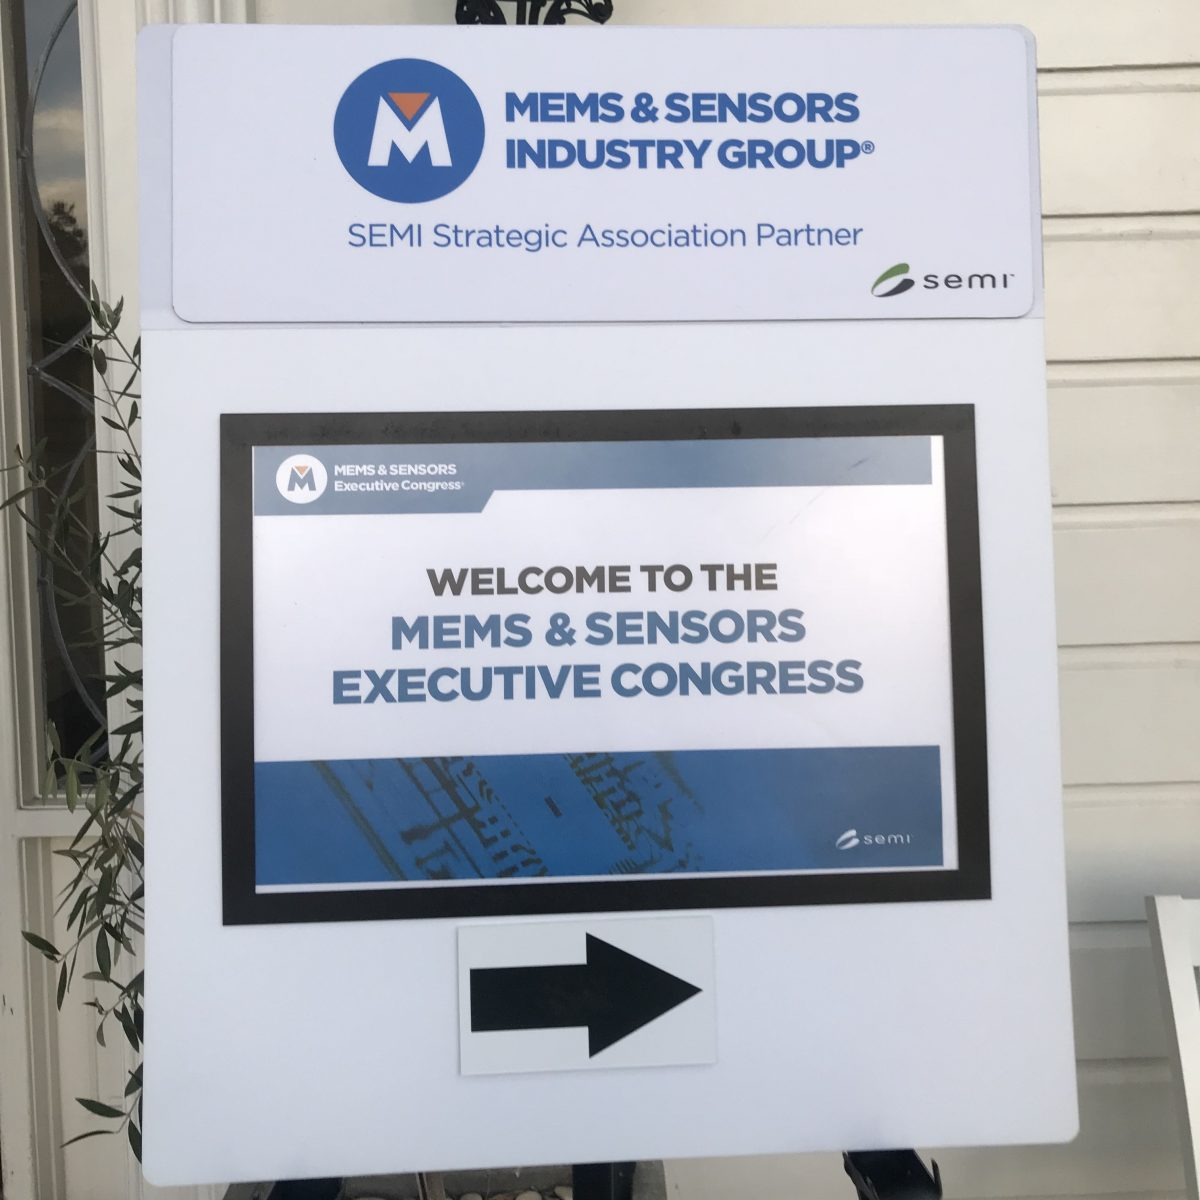 Follow EE Journal's Live Coverage of the MEMS and Sensors Executive Congress